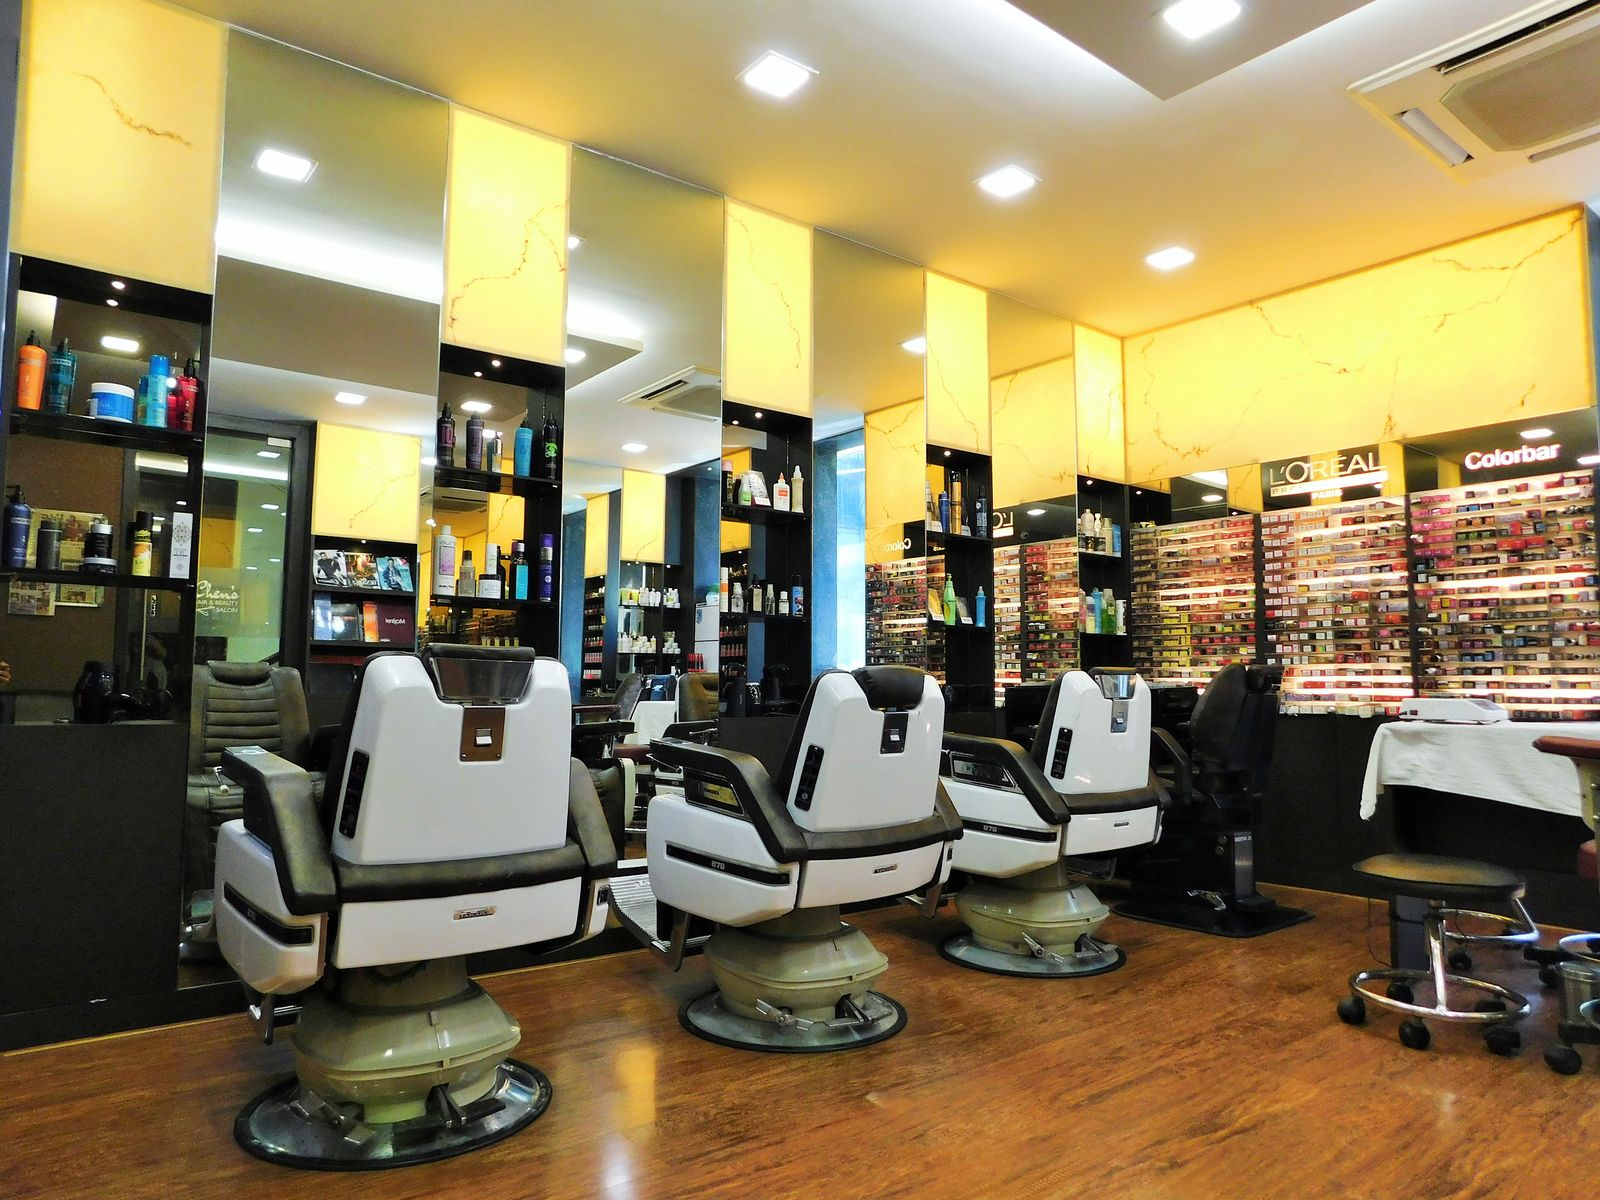 Chen's hair and beauty salon, Colaba